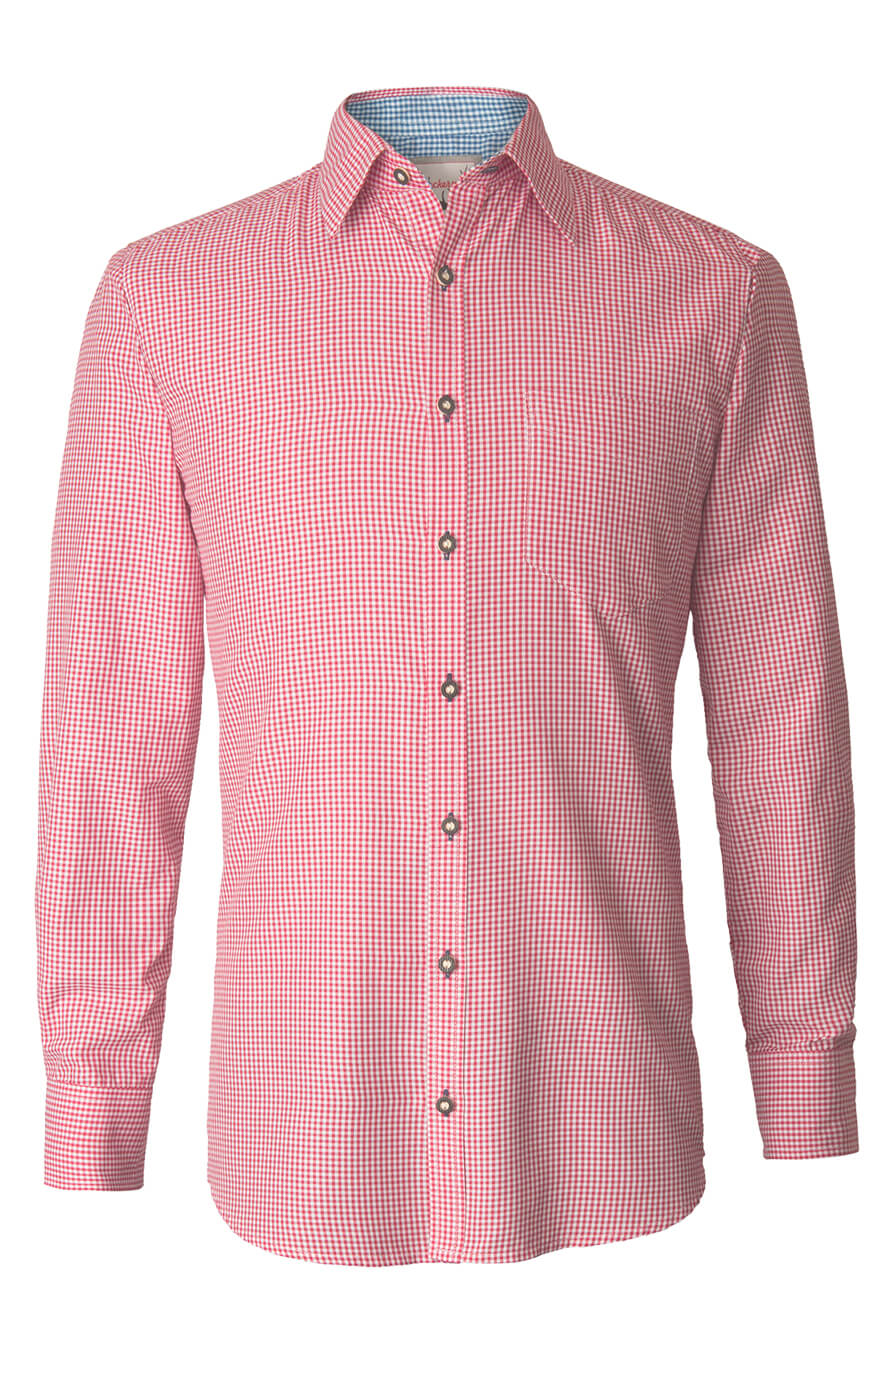 weitere Bilder von German traditional shirt Dave2 red